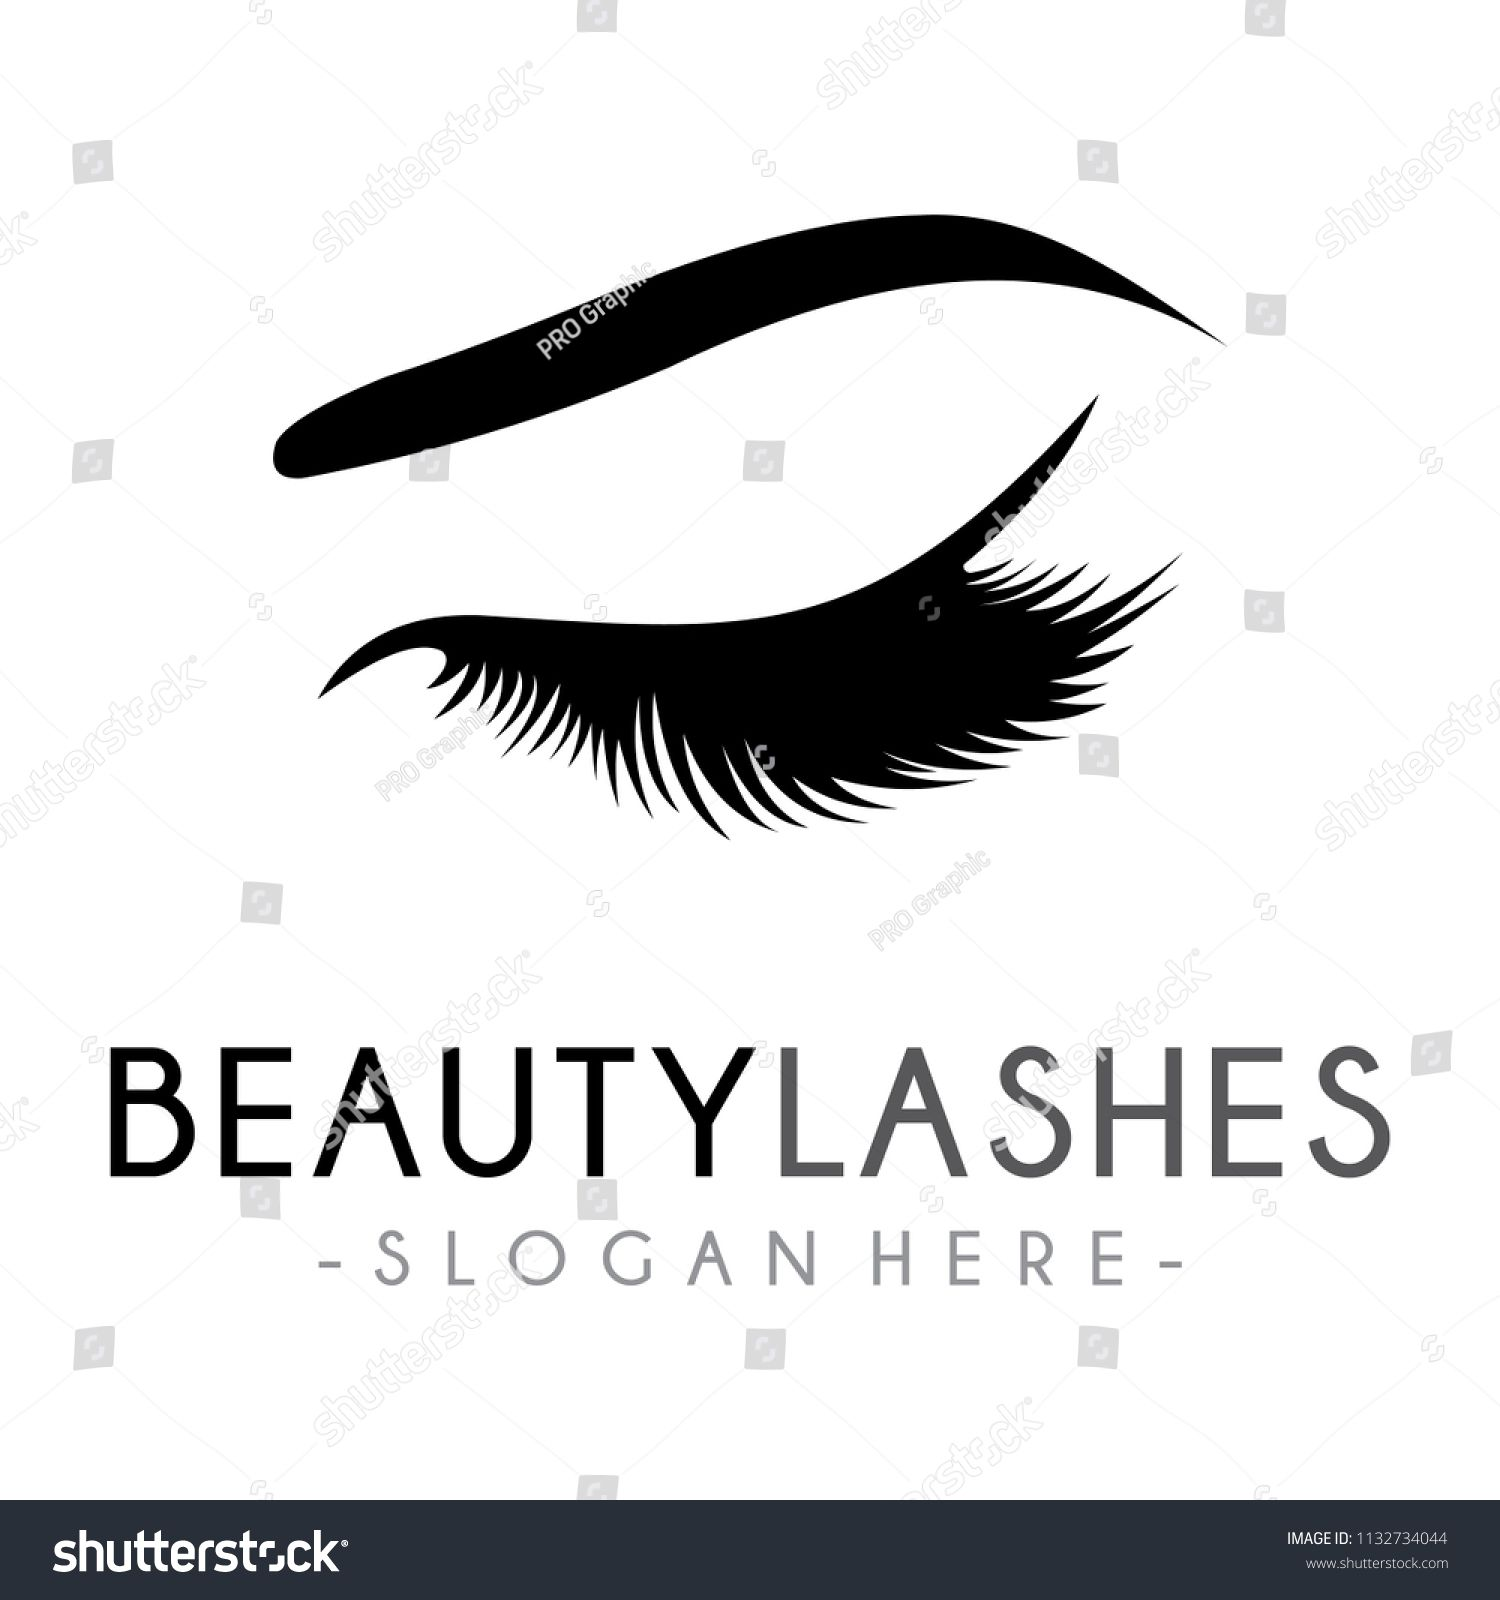 2fafcf15b54 Find Lash Logo, Luxury Beauty Eye Lashes Logo Design Inspiration Vector  stock vectors and royalty free photos in HD. Explore millions of stock  photos, ...